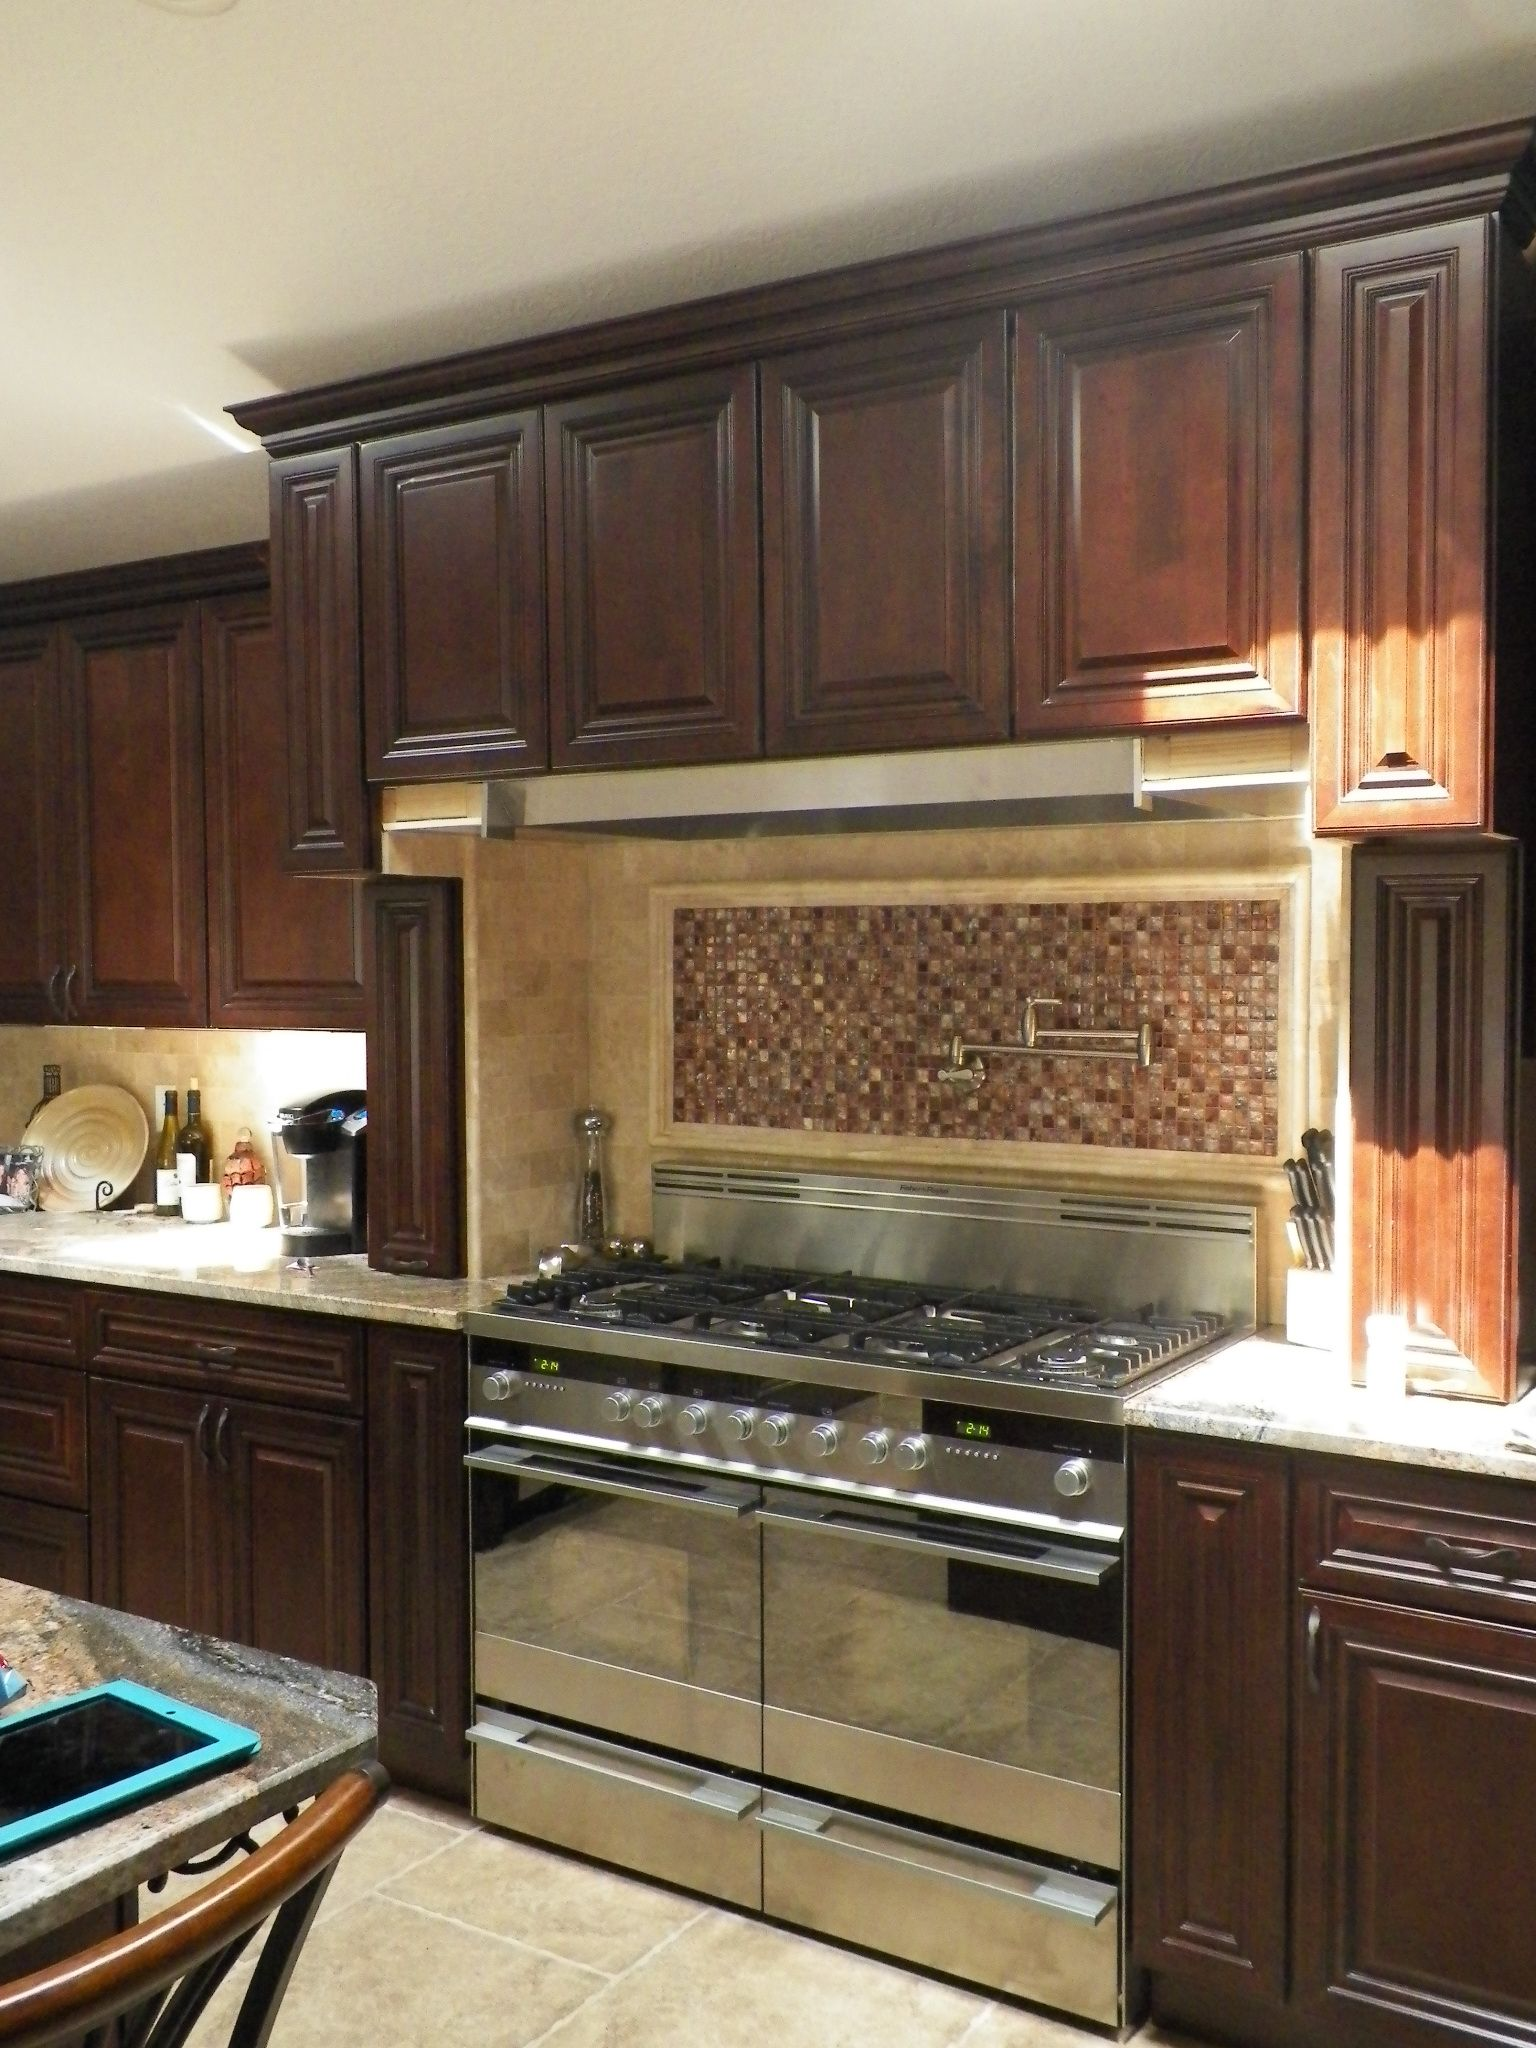 woodwork not complete yet | Kitchen, Wall oven, Kitchen ...